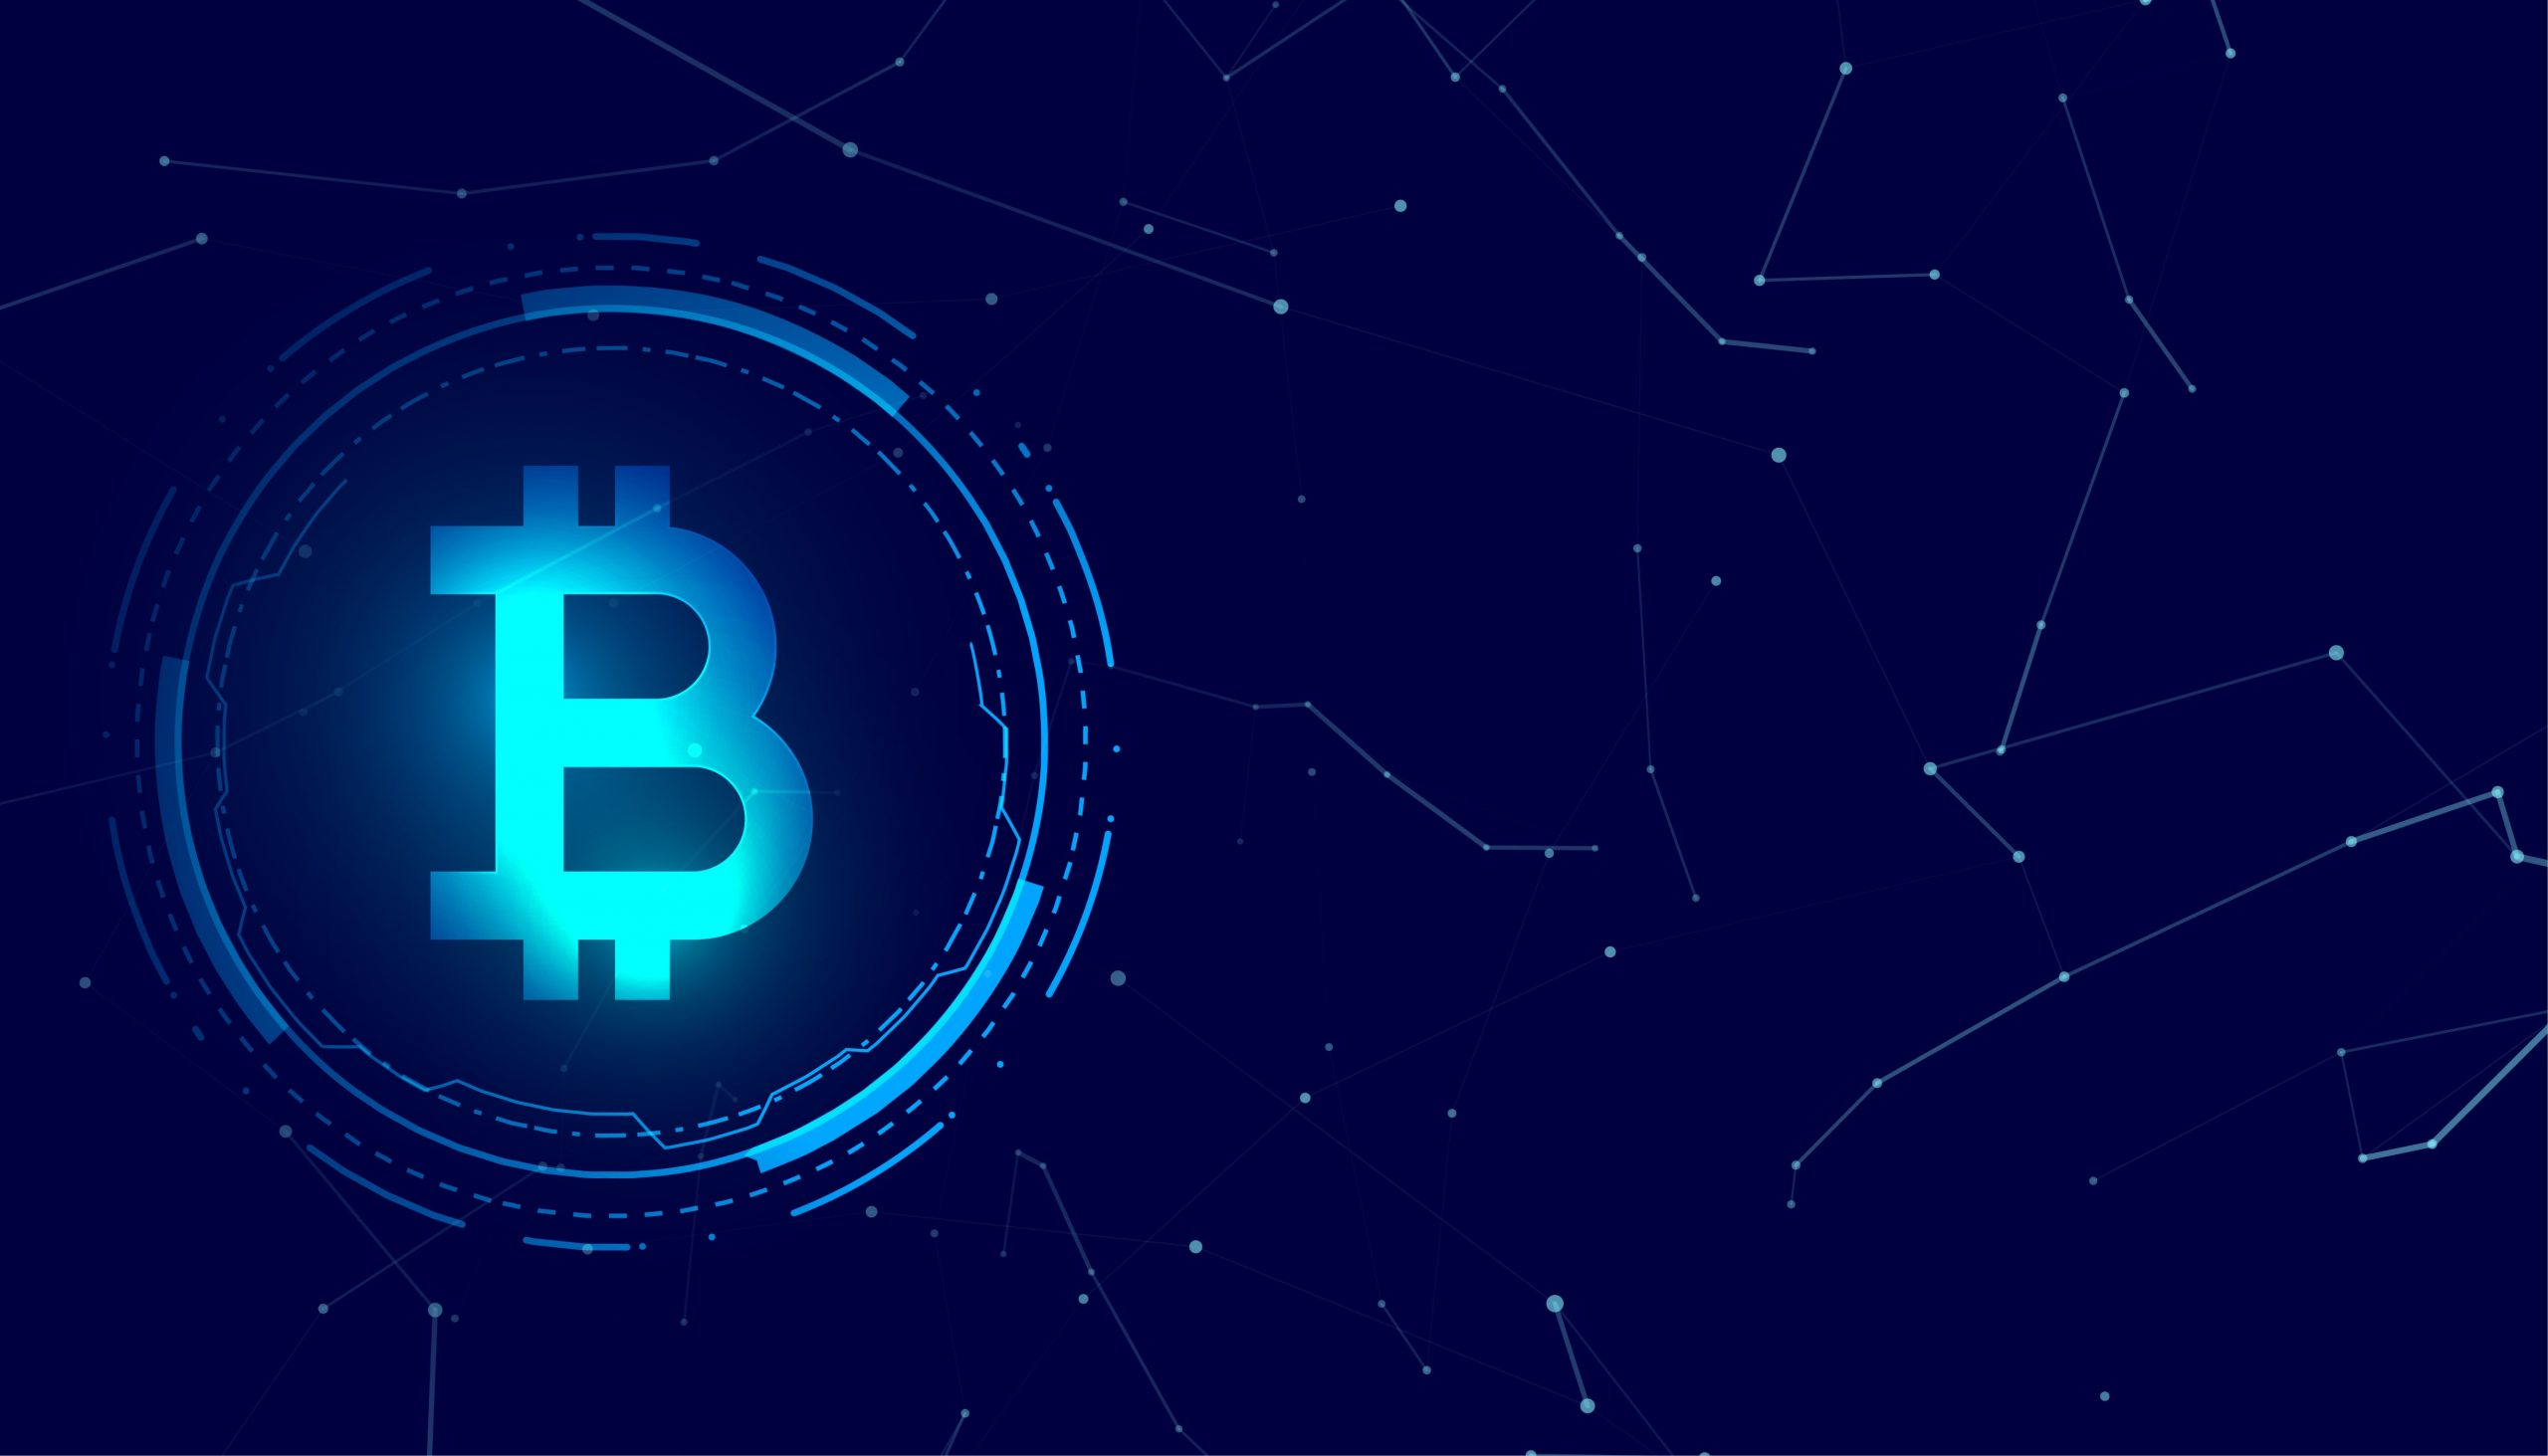 All about Blockchain & Crypto-currency.